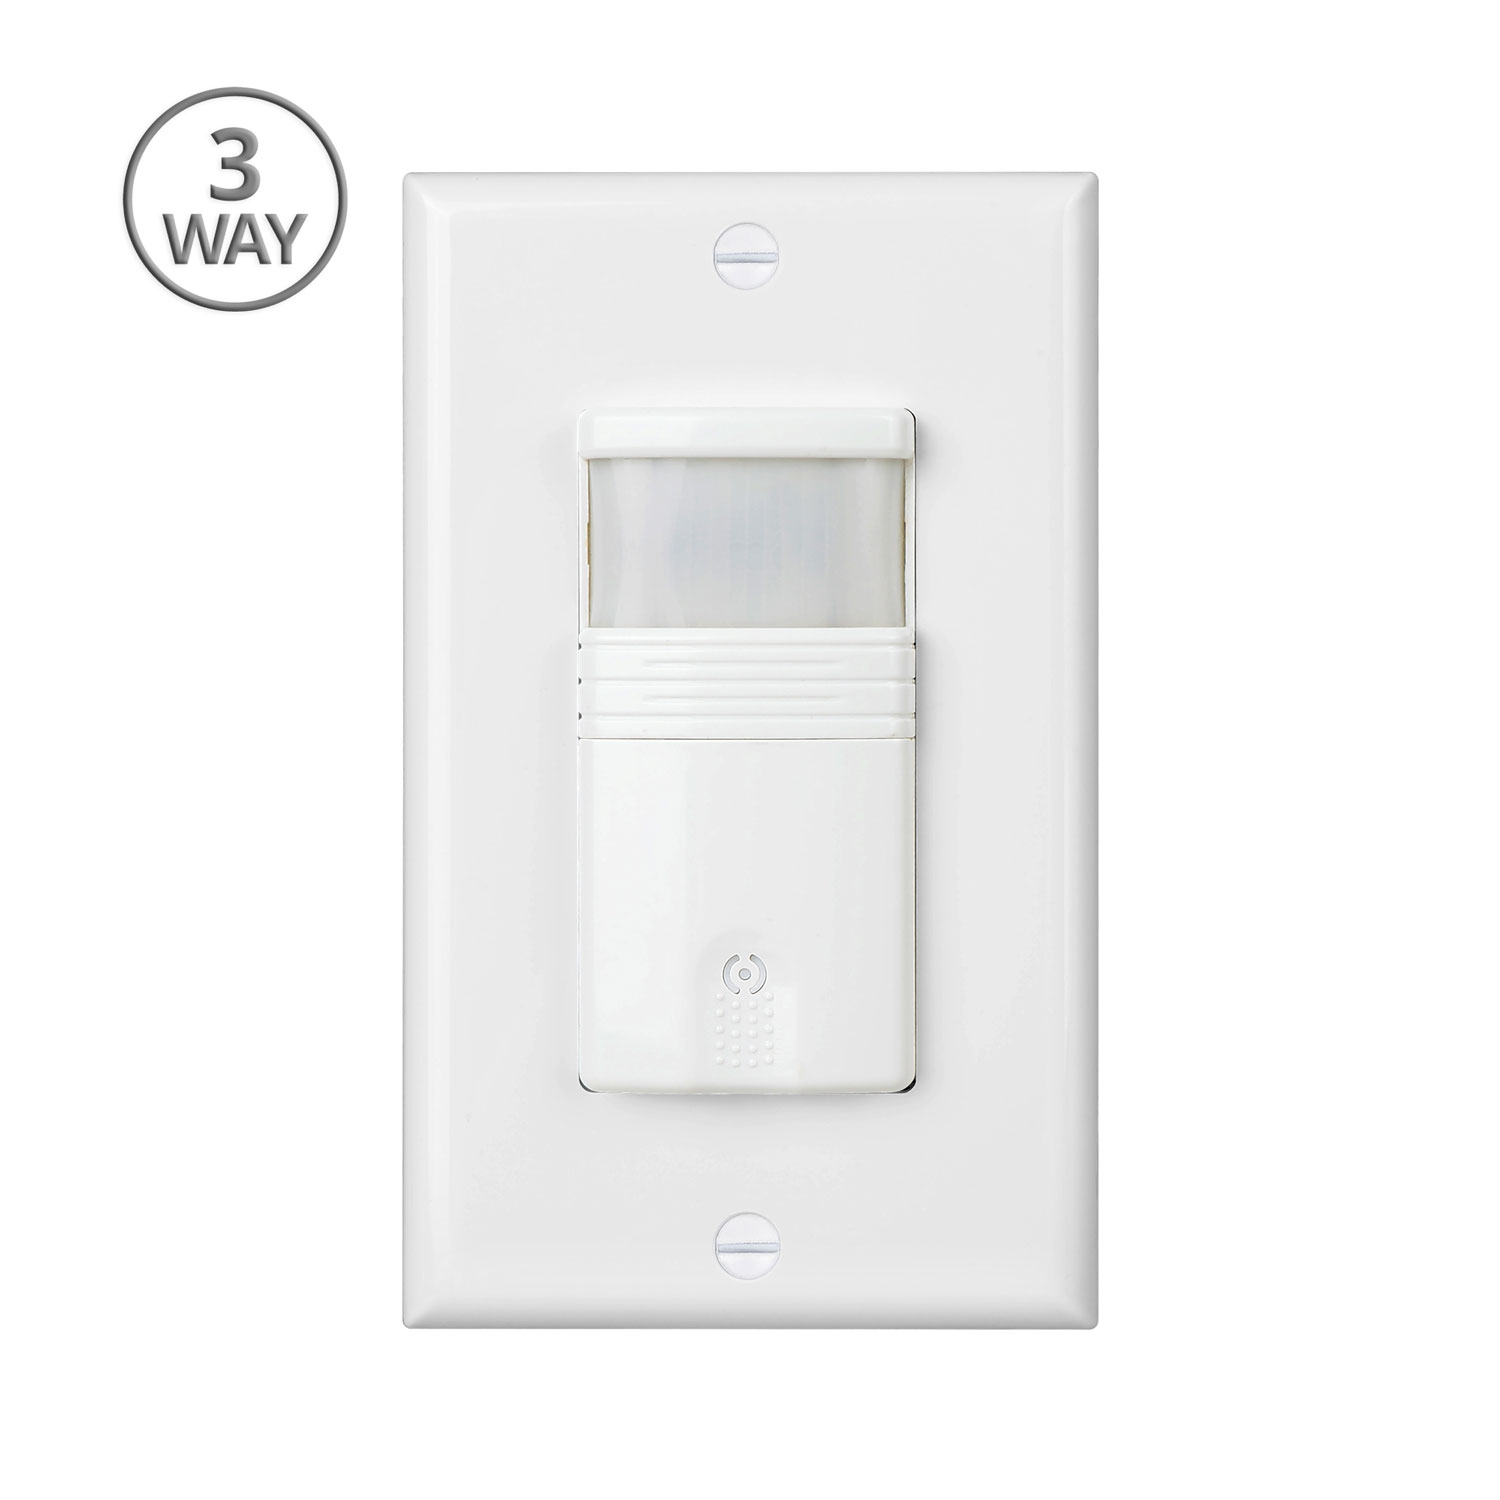 Details About White 3 Way Motion Sensor Light Switch With Adjule Timer Ul Certified